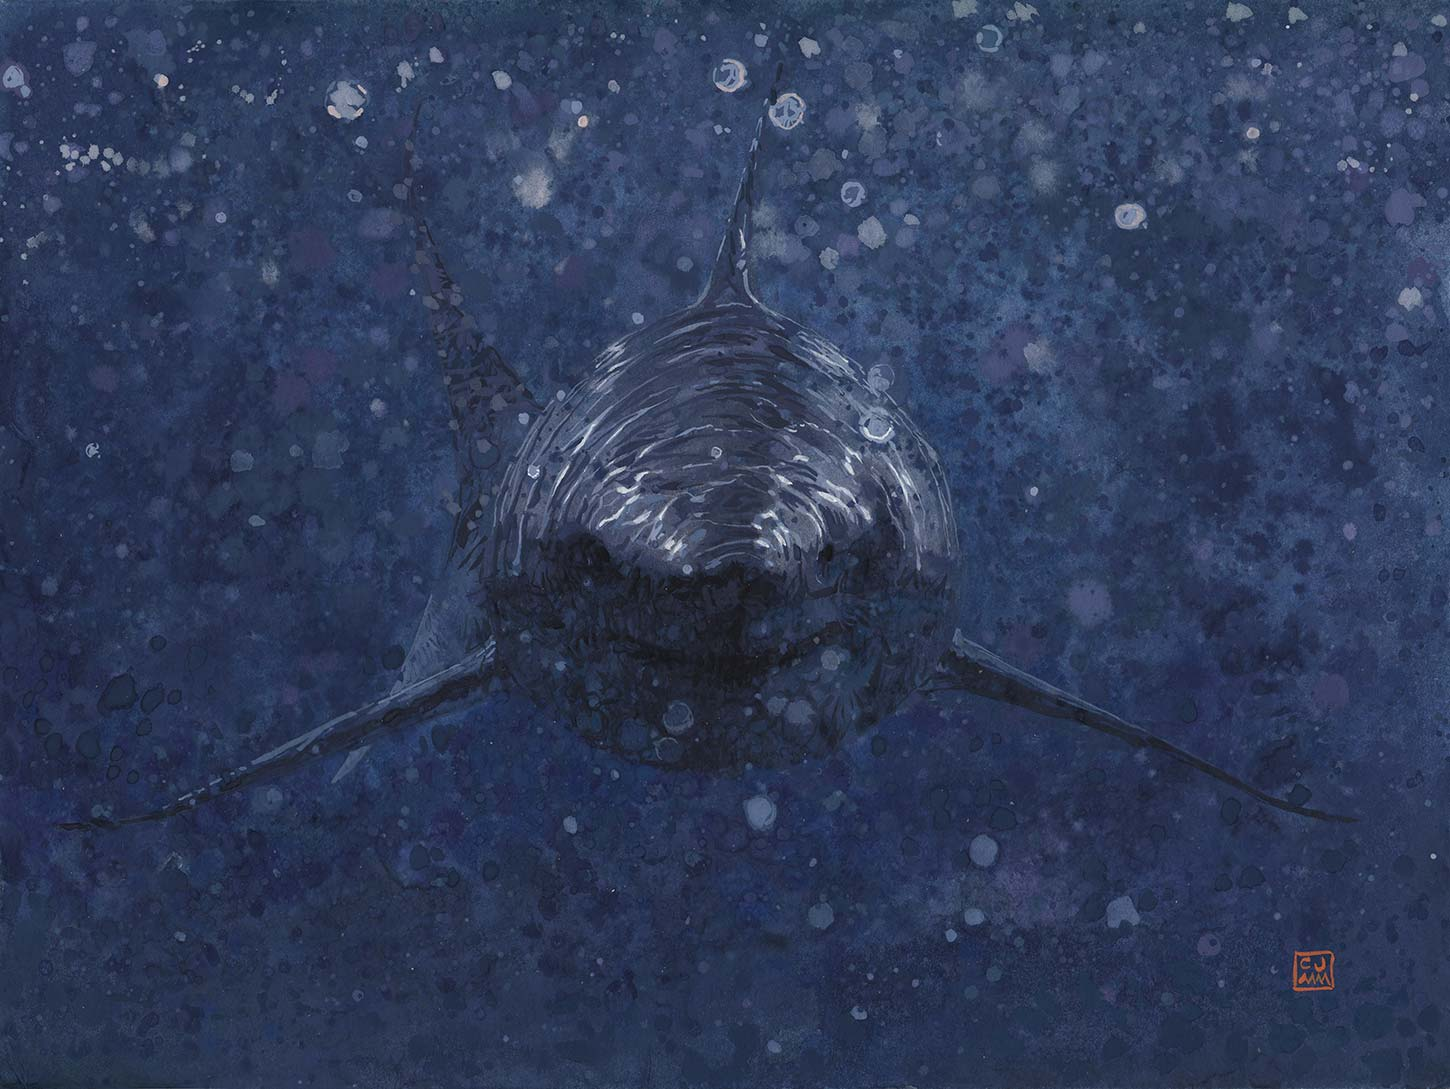 Carcharodon Carcharias The Life Underwater Drawing Illustration Project by CJMM Carlos J Marquez